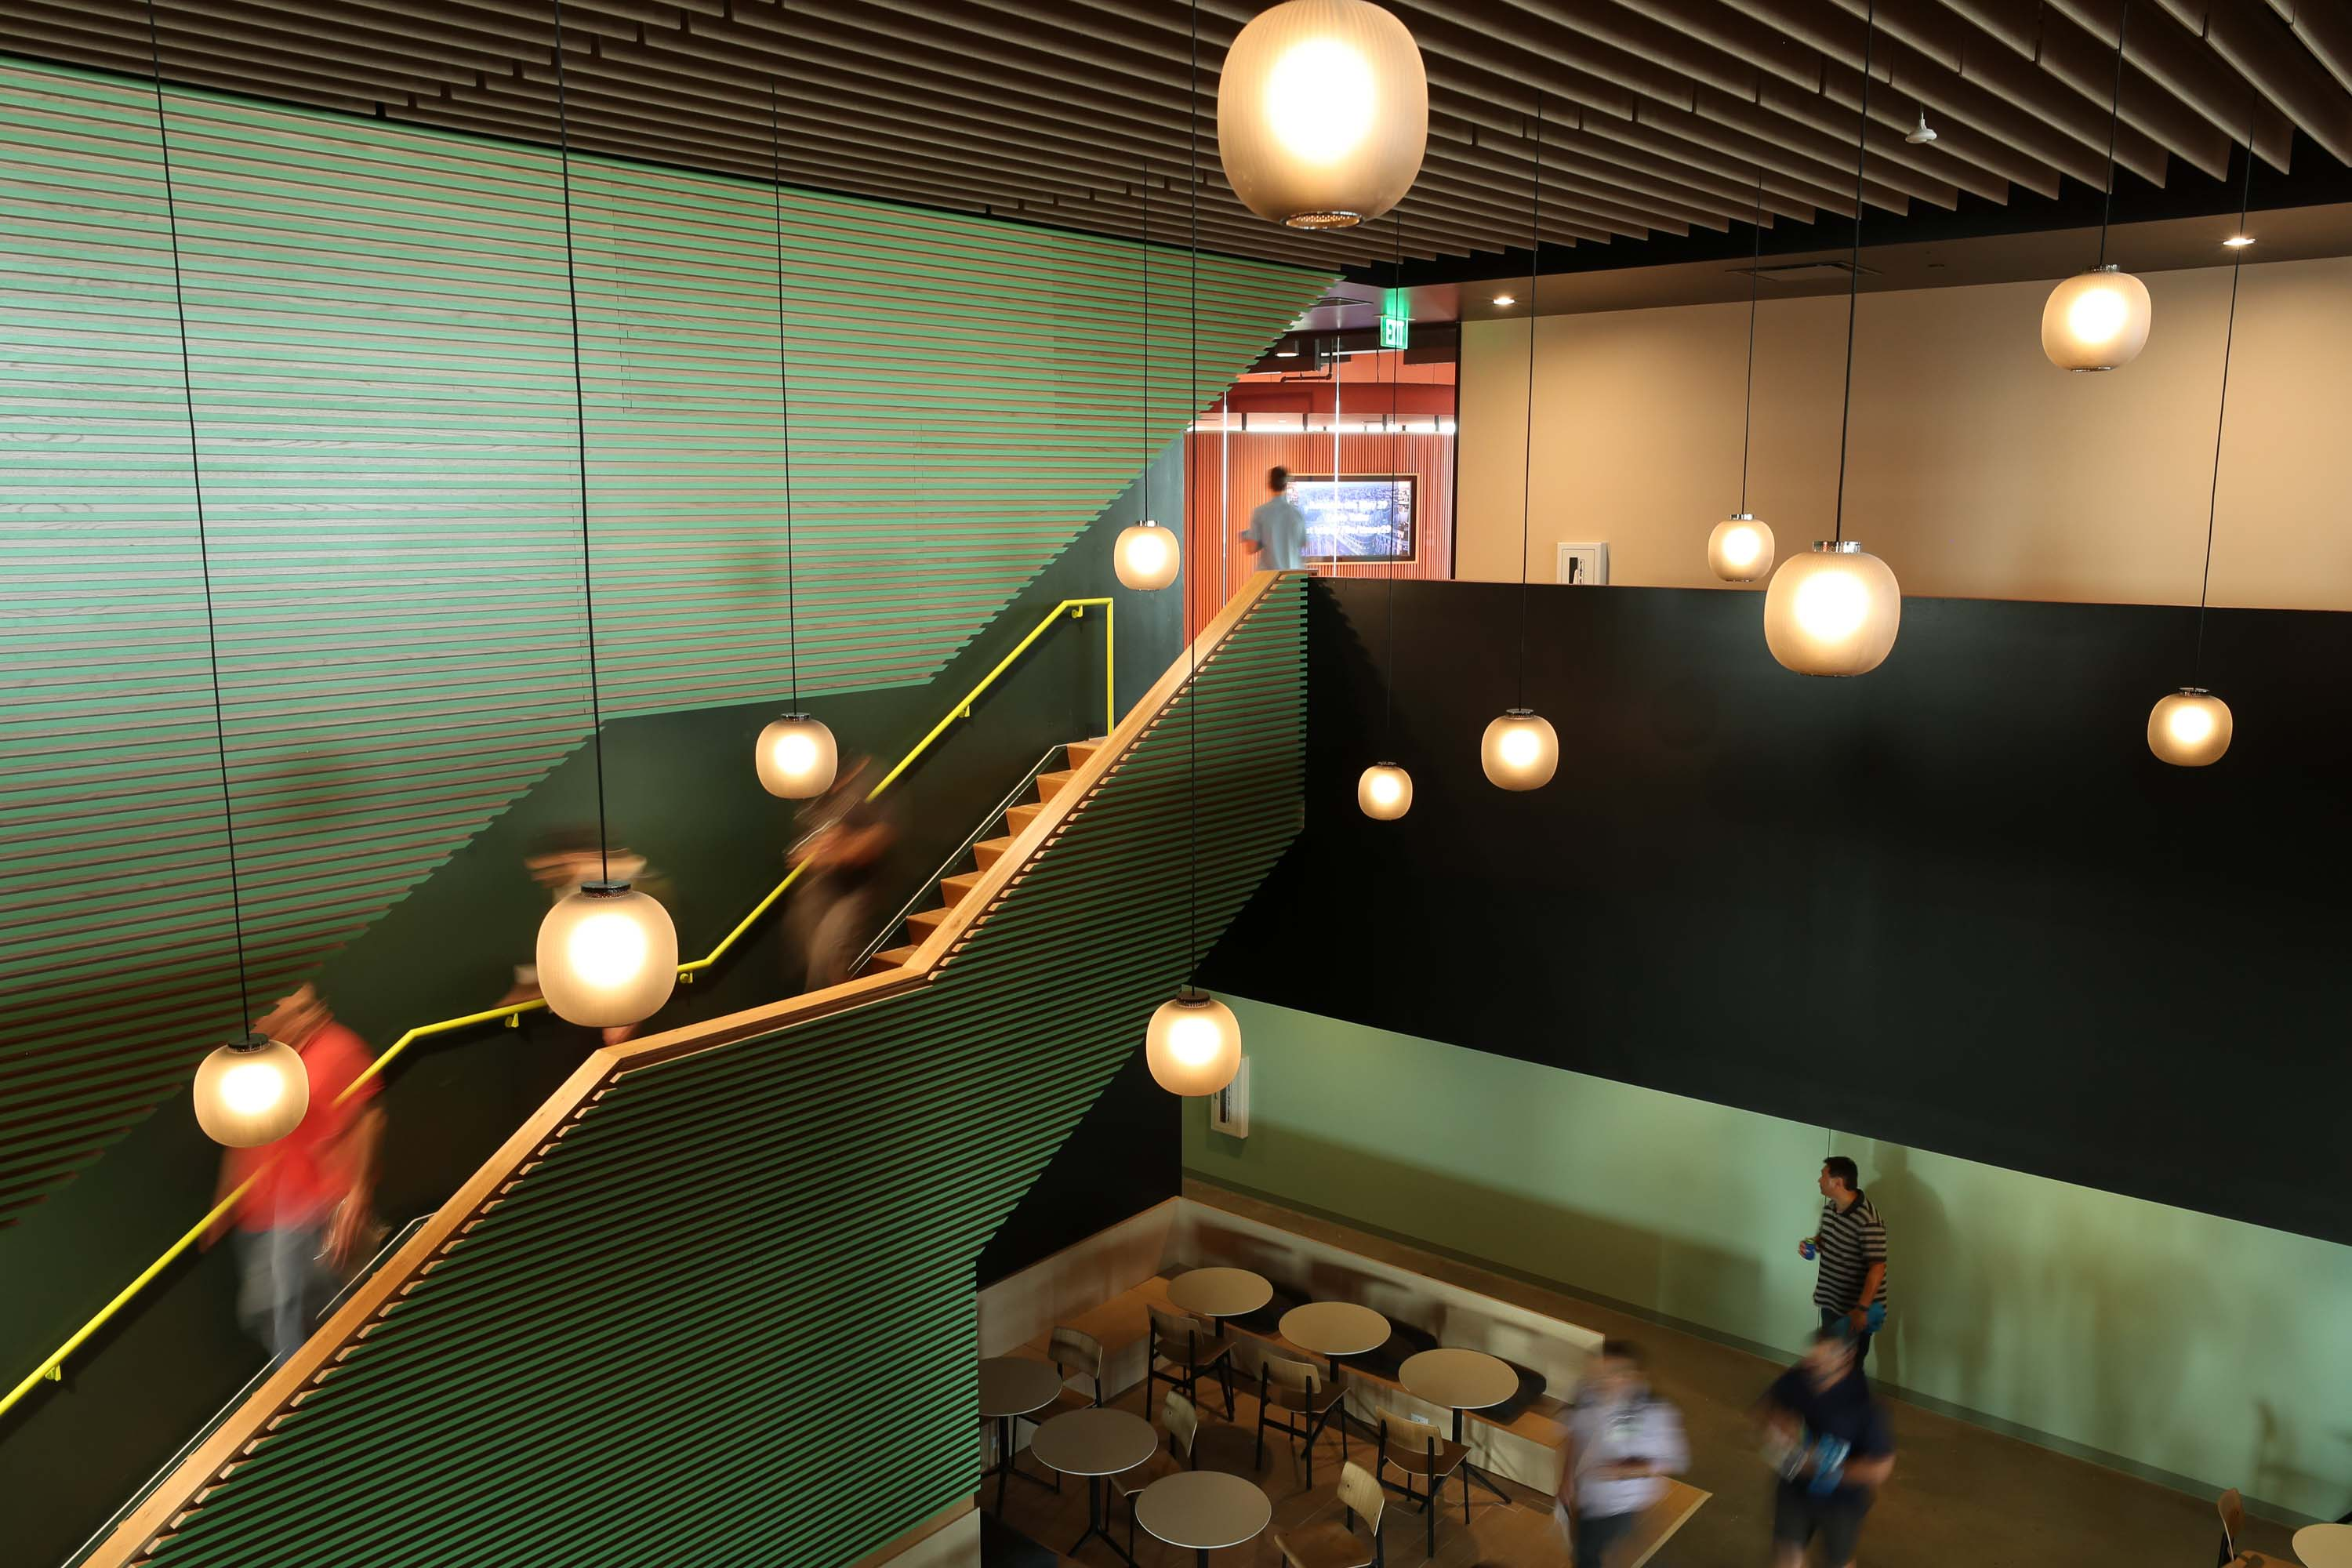 green stairs with people walking down and orb pendant lights hanging from the ceiling